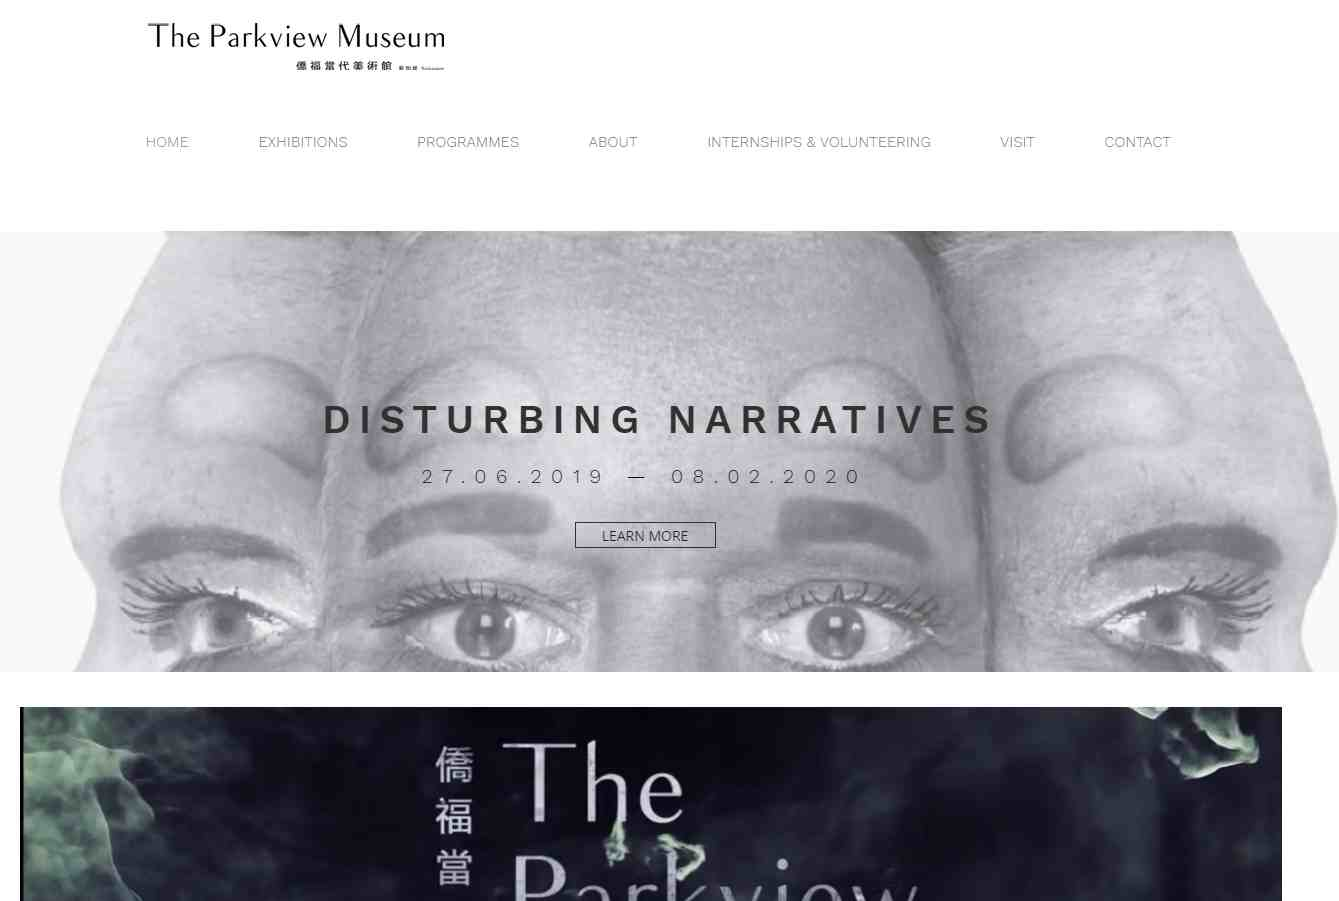 the parkview Top Museums in Singapore